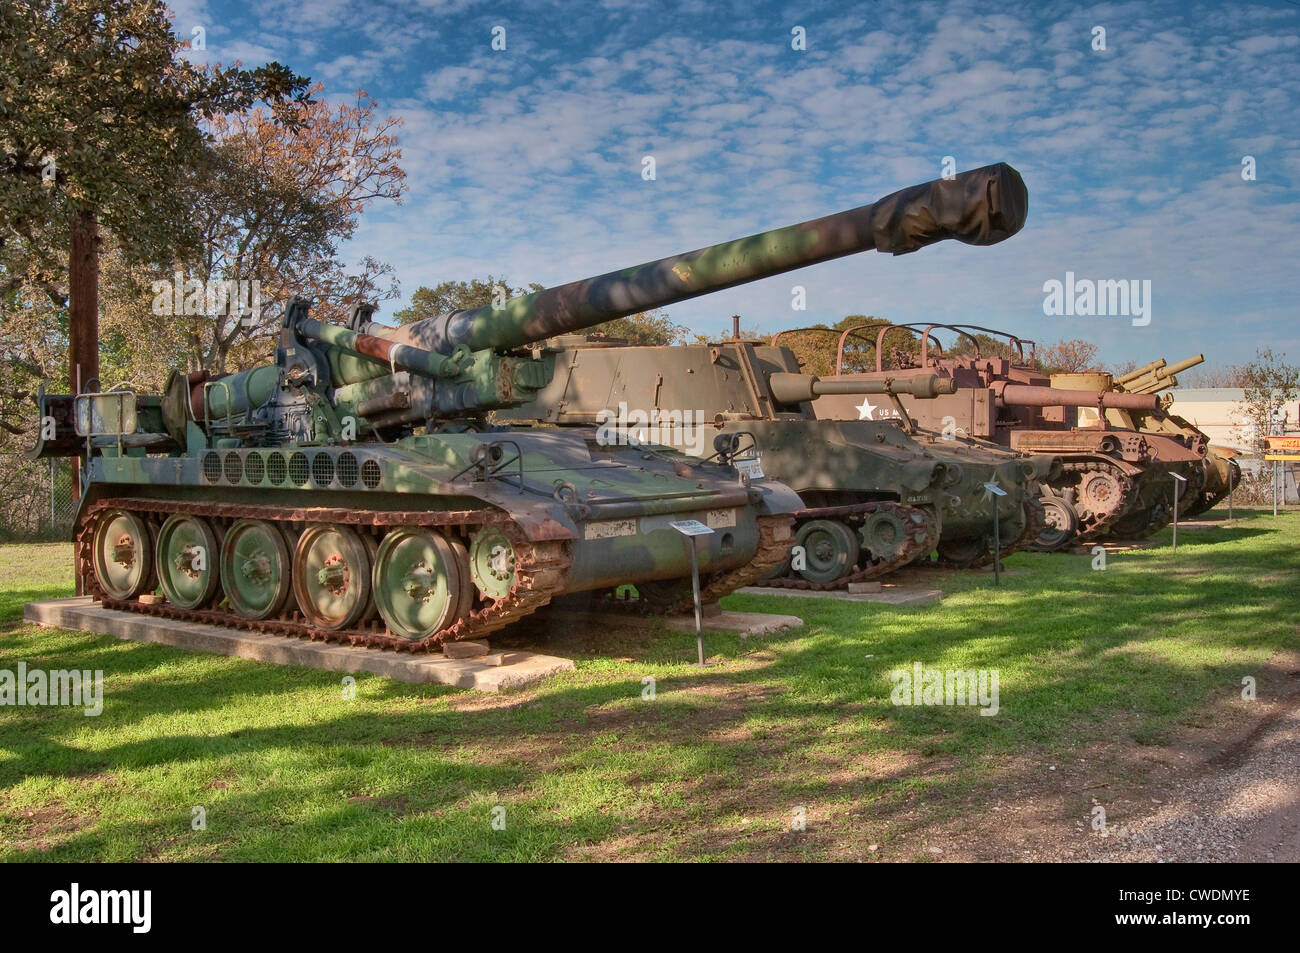 M110 Self-Propelled Howitzer, Artillery Park at Texas Military Forces Museum at Camp Mabry in Austin, Texas, USA - Stock Image